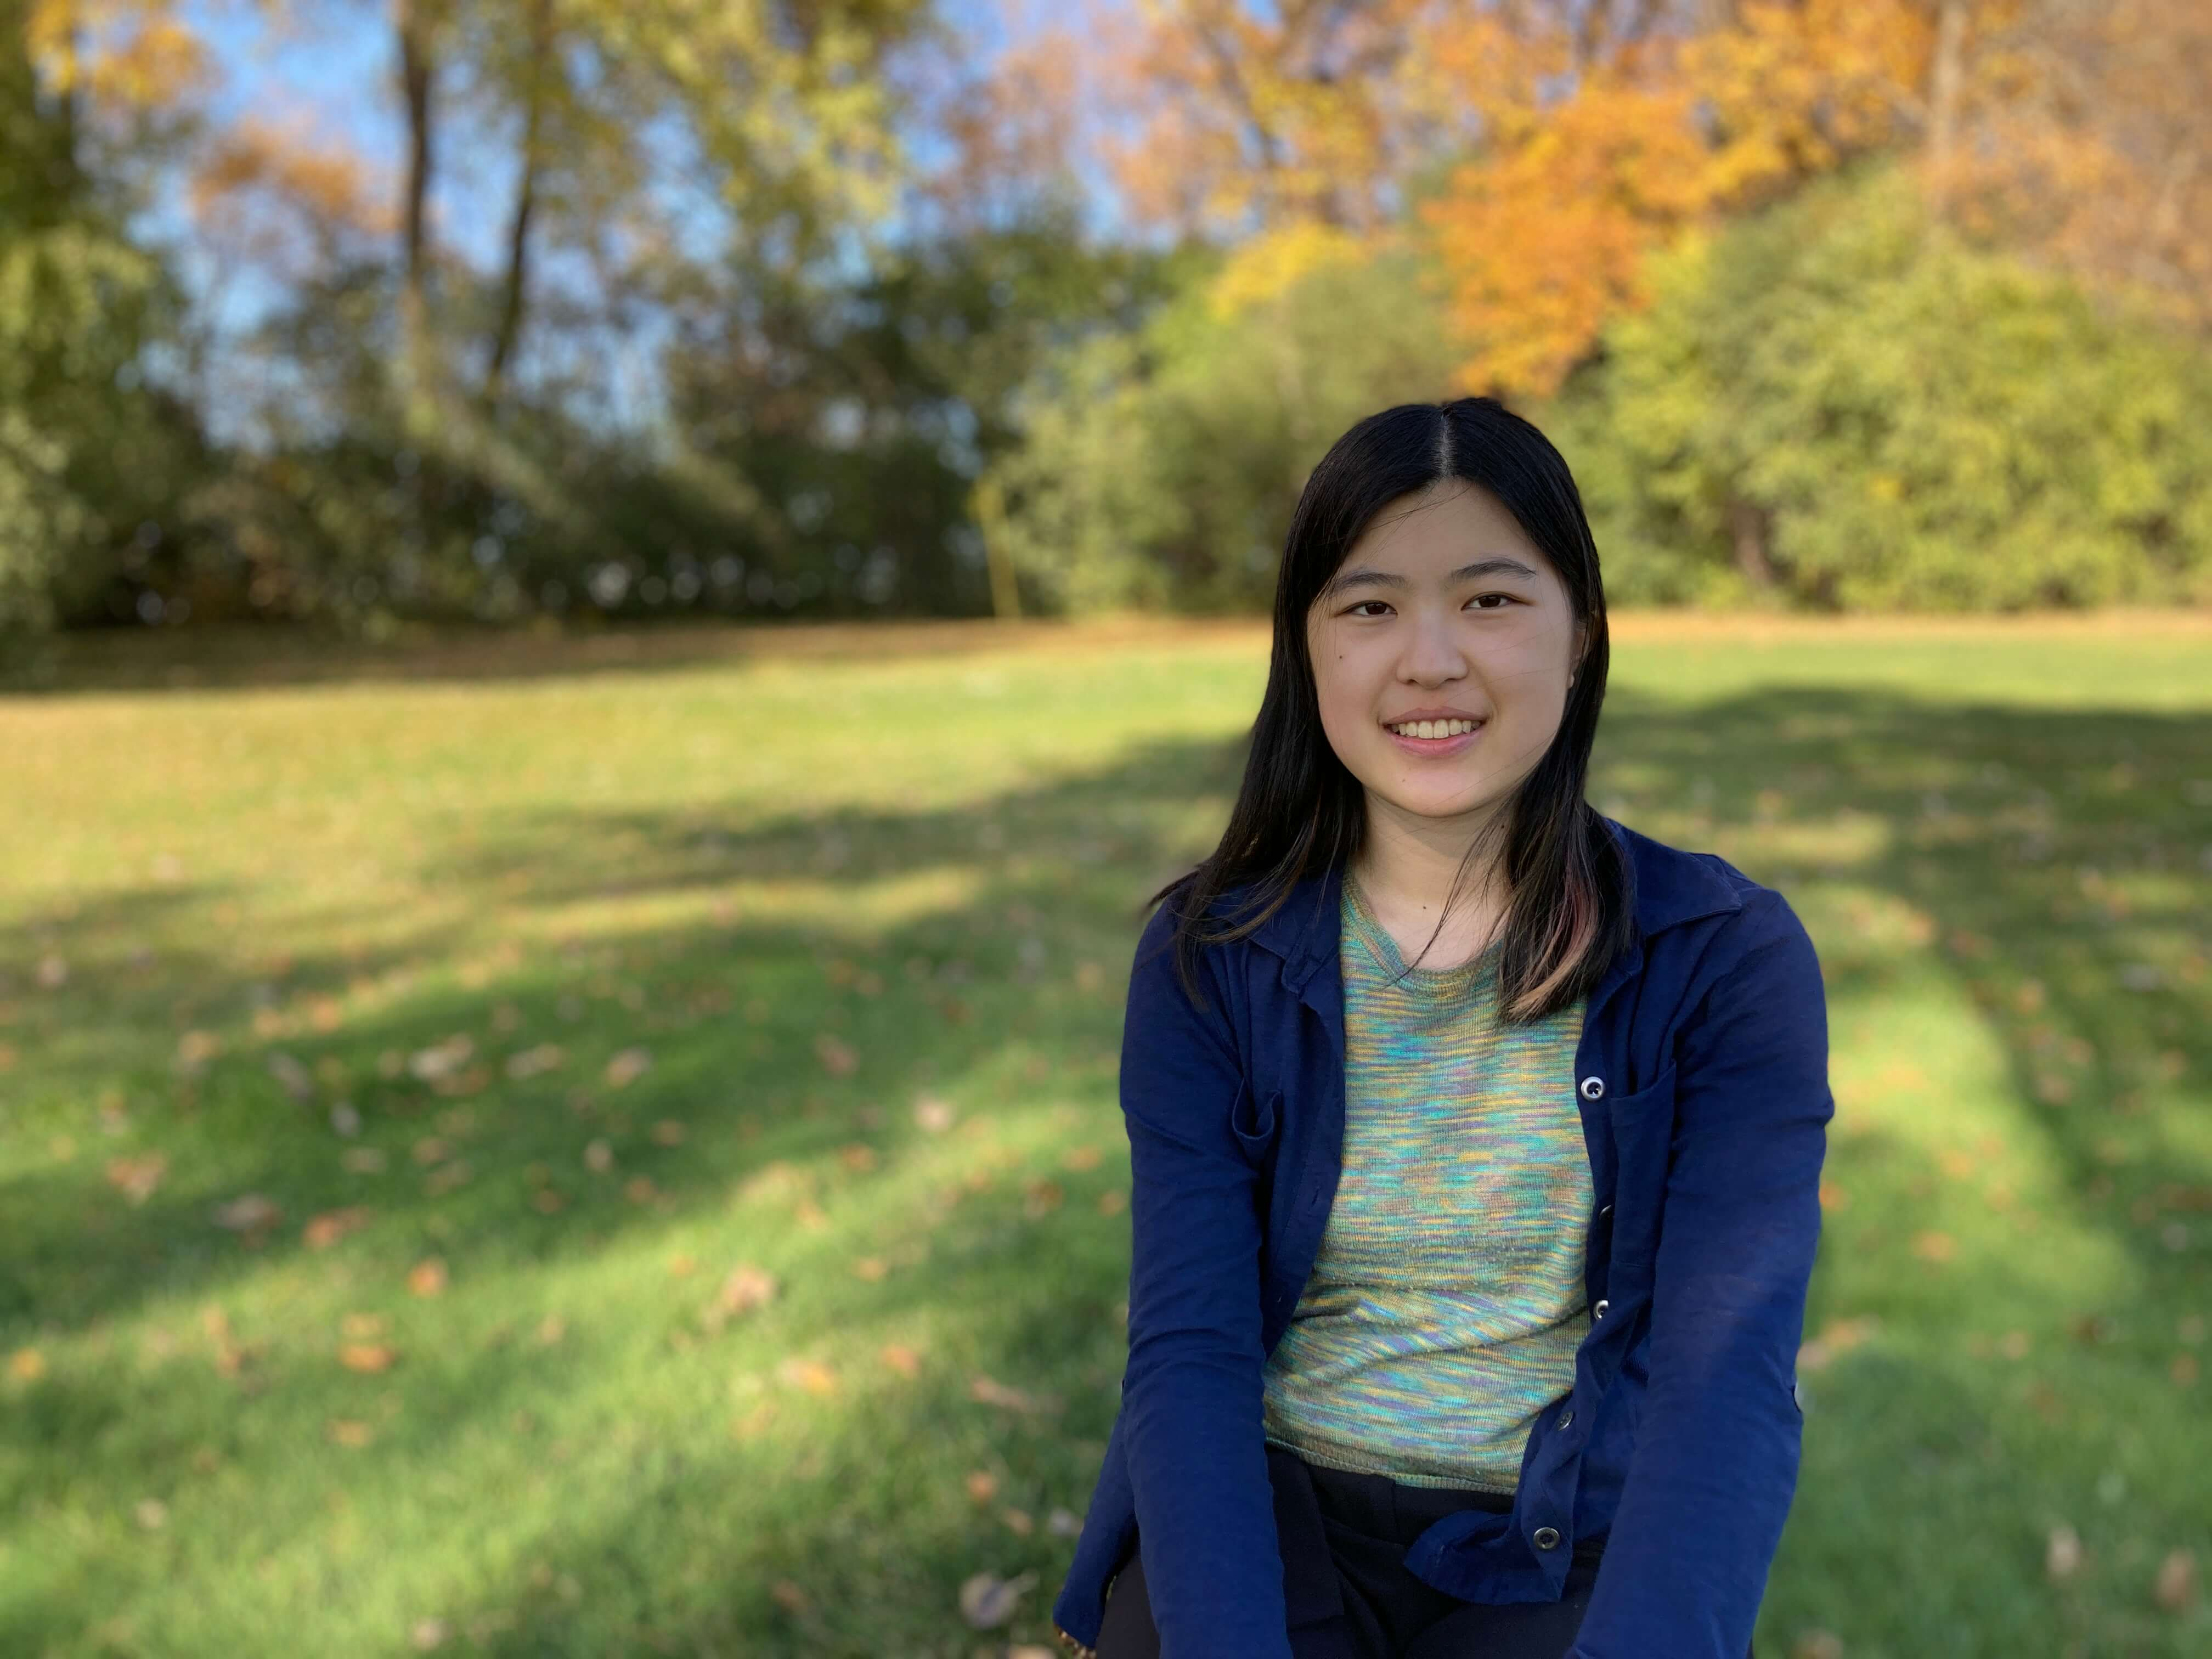 Putting MIT on hold for a gap year in South Korea